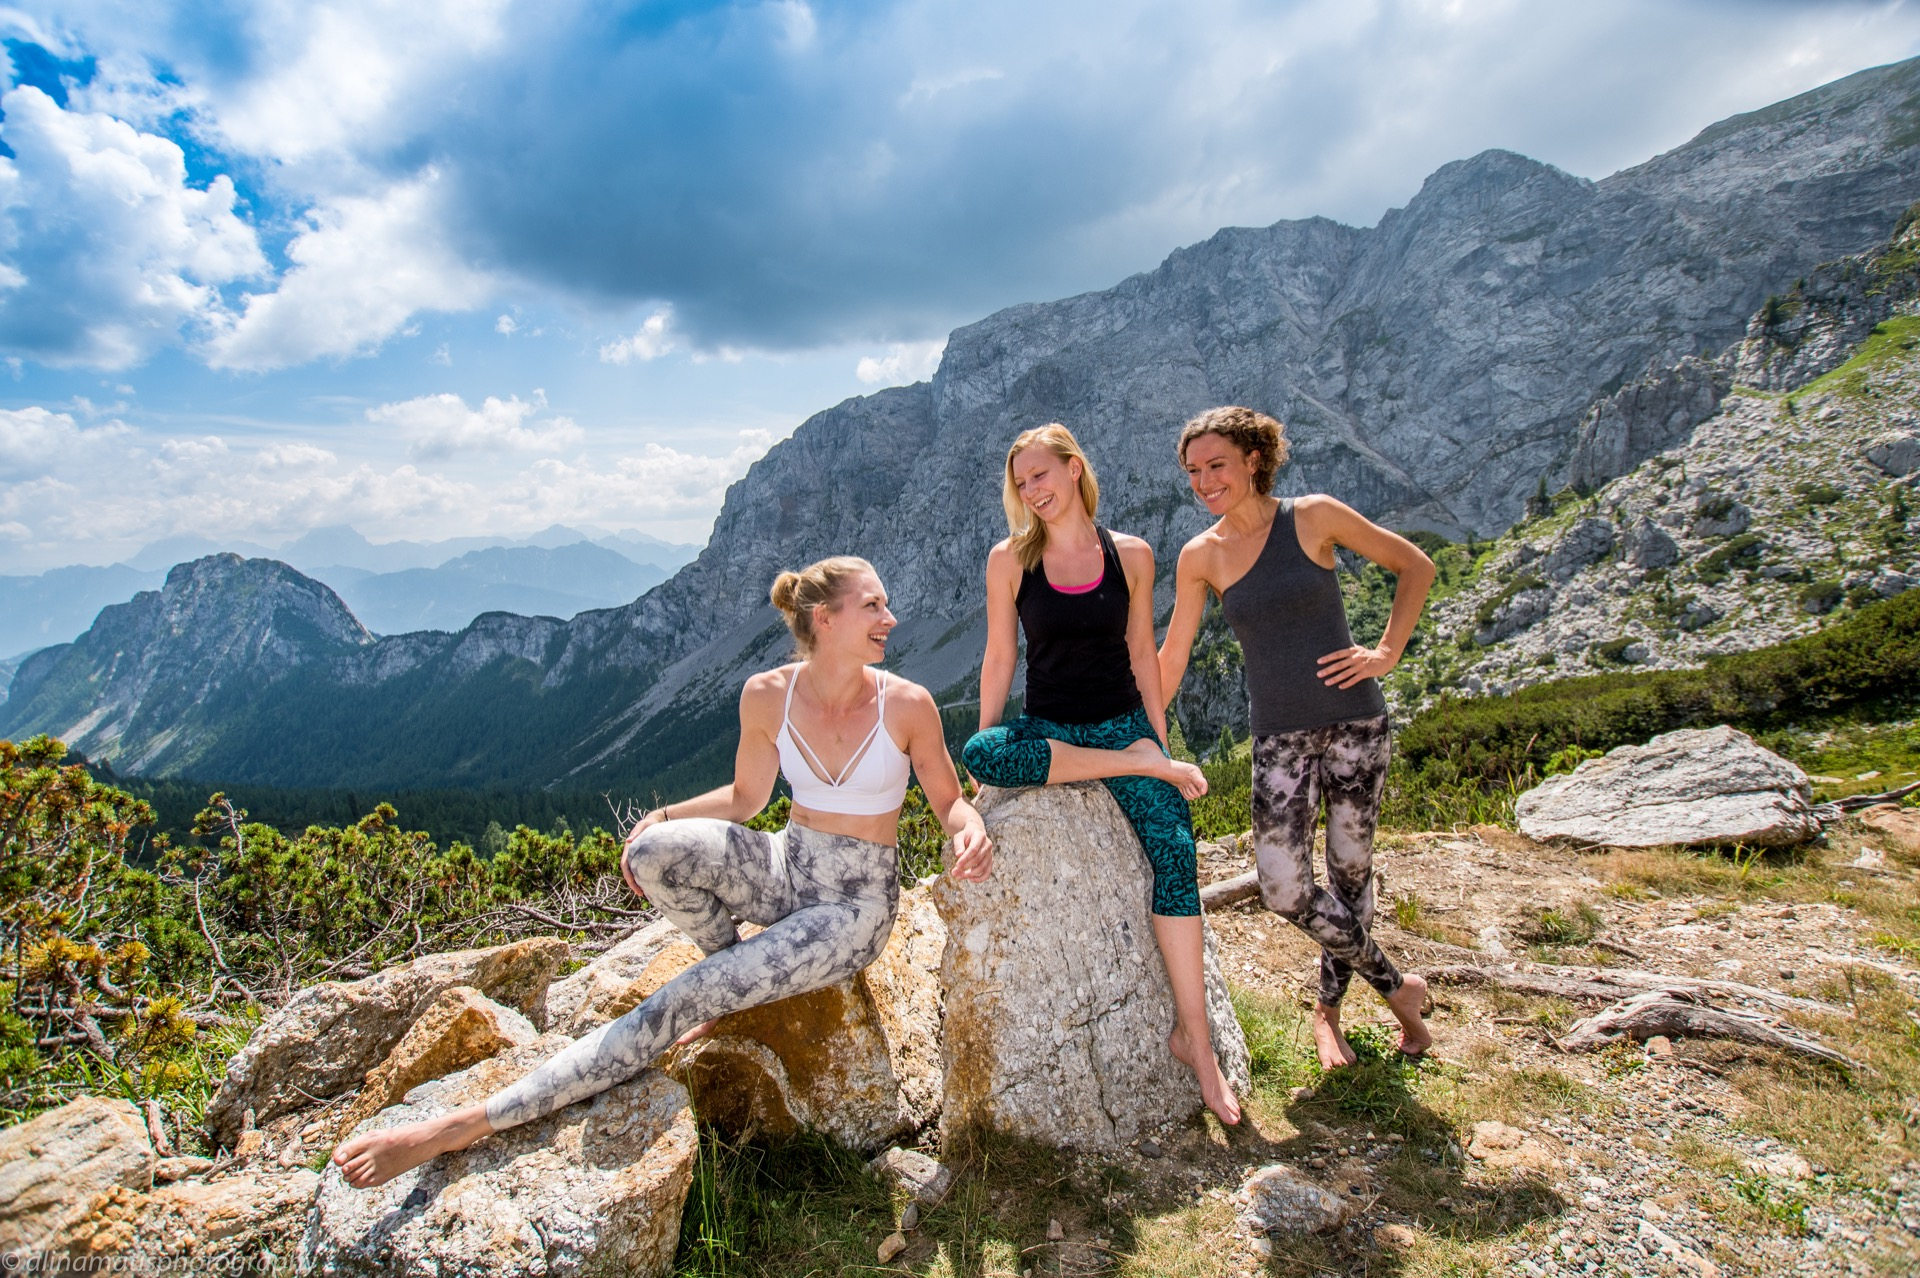 Hie-Kim-Friends-2018-Yoga-Retreat-Alina-Matis-Photography-160 - Hie Kim Yoga - Yoga Retreat - Yoga Workshops und Reisen